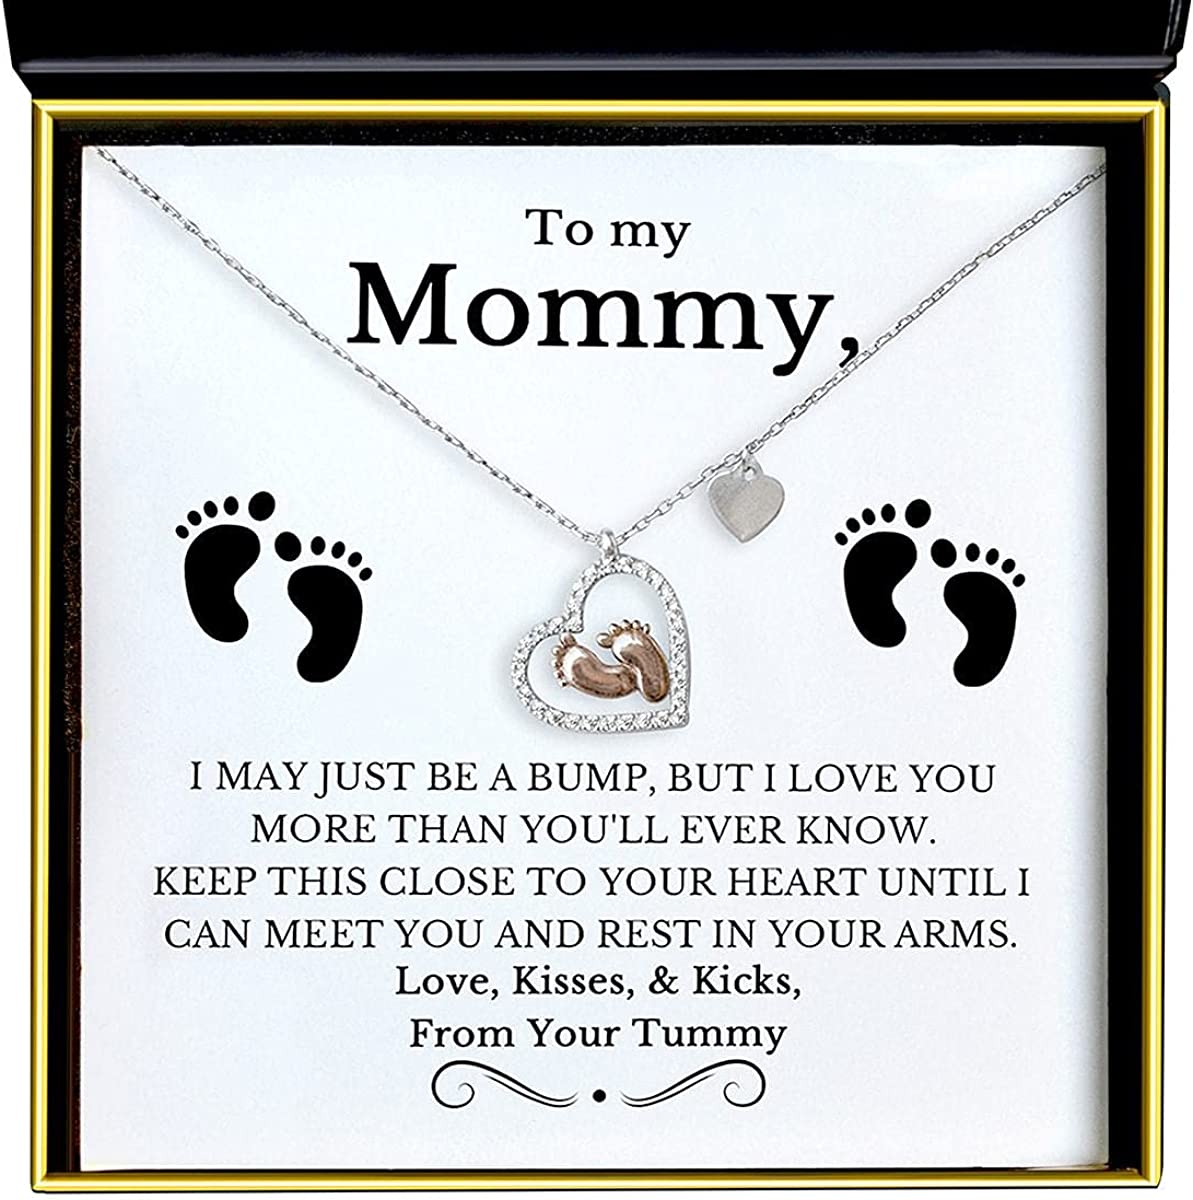 Aphrodite's New Mom Gifts for Be Pregnancy Women Very popular to Mommy Shipping Free